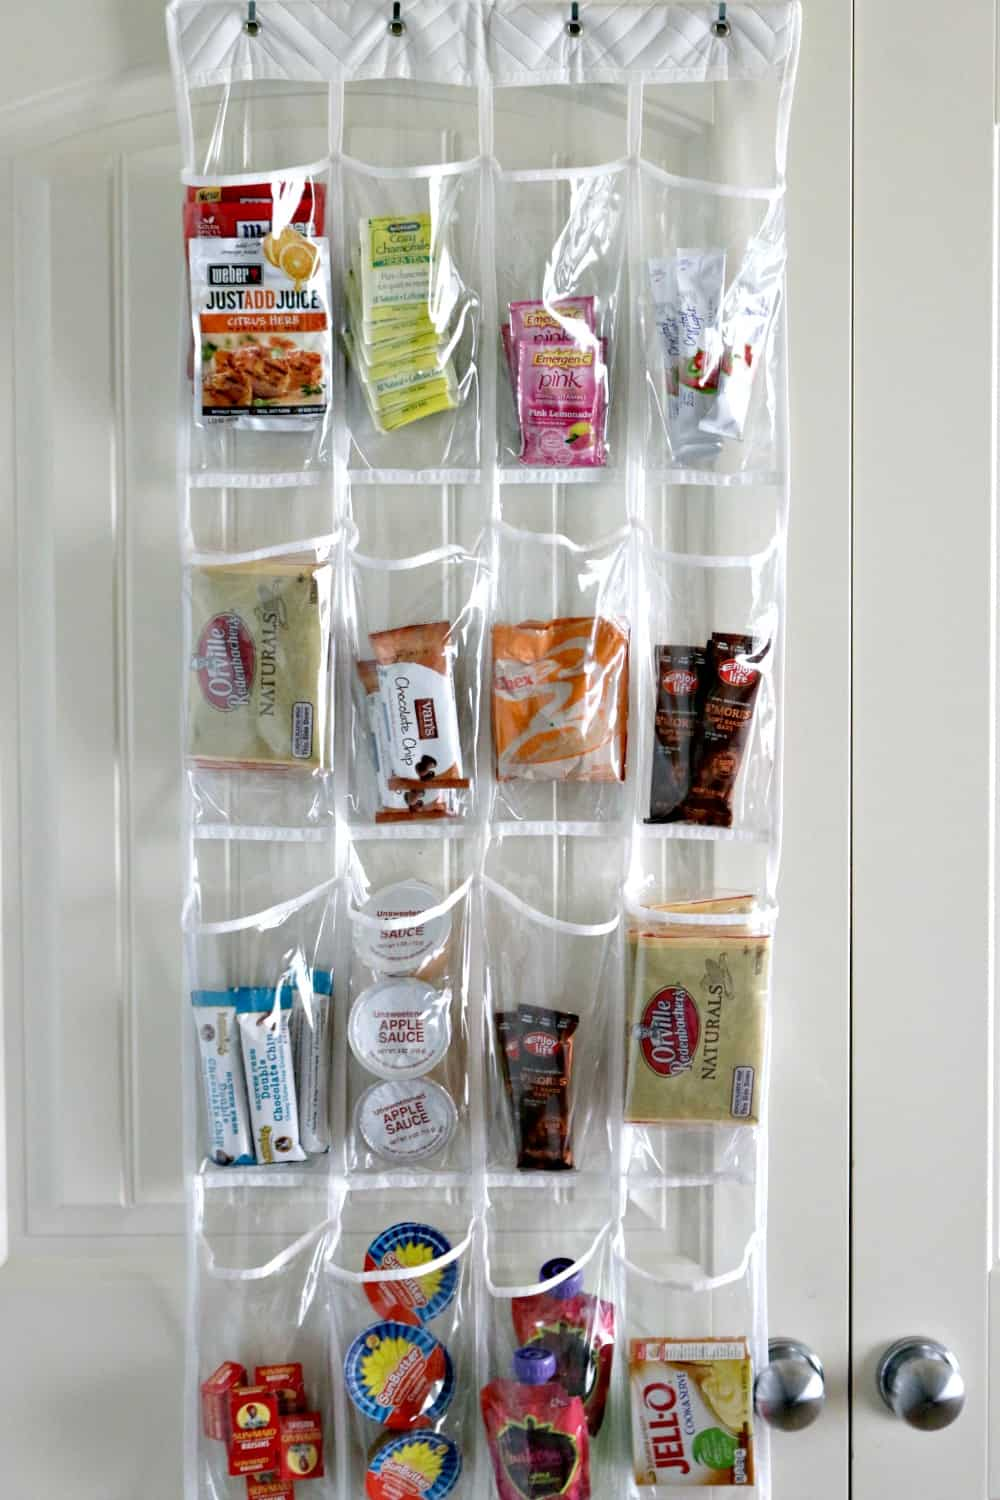 Shoe organizer for reachable kids' snacks